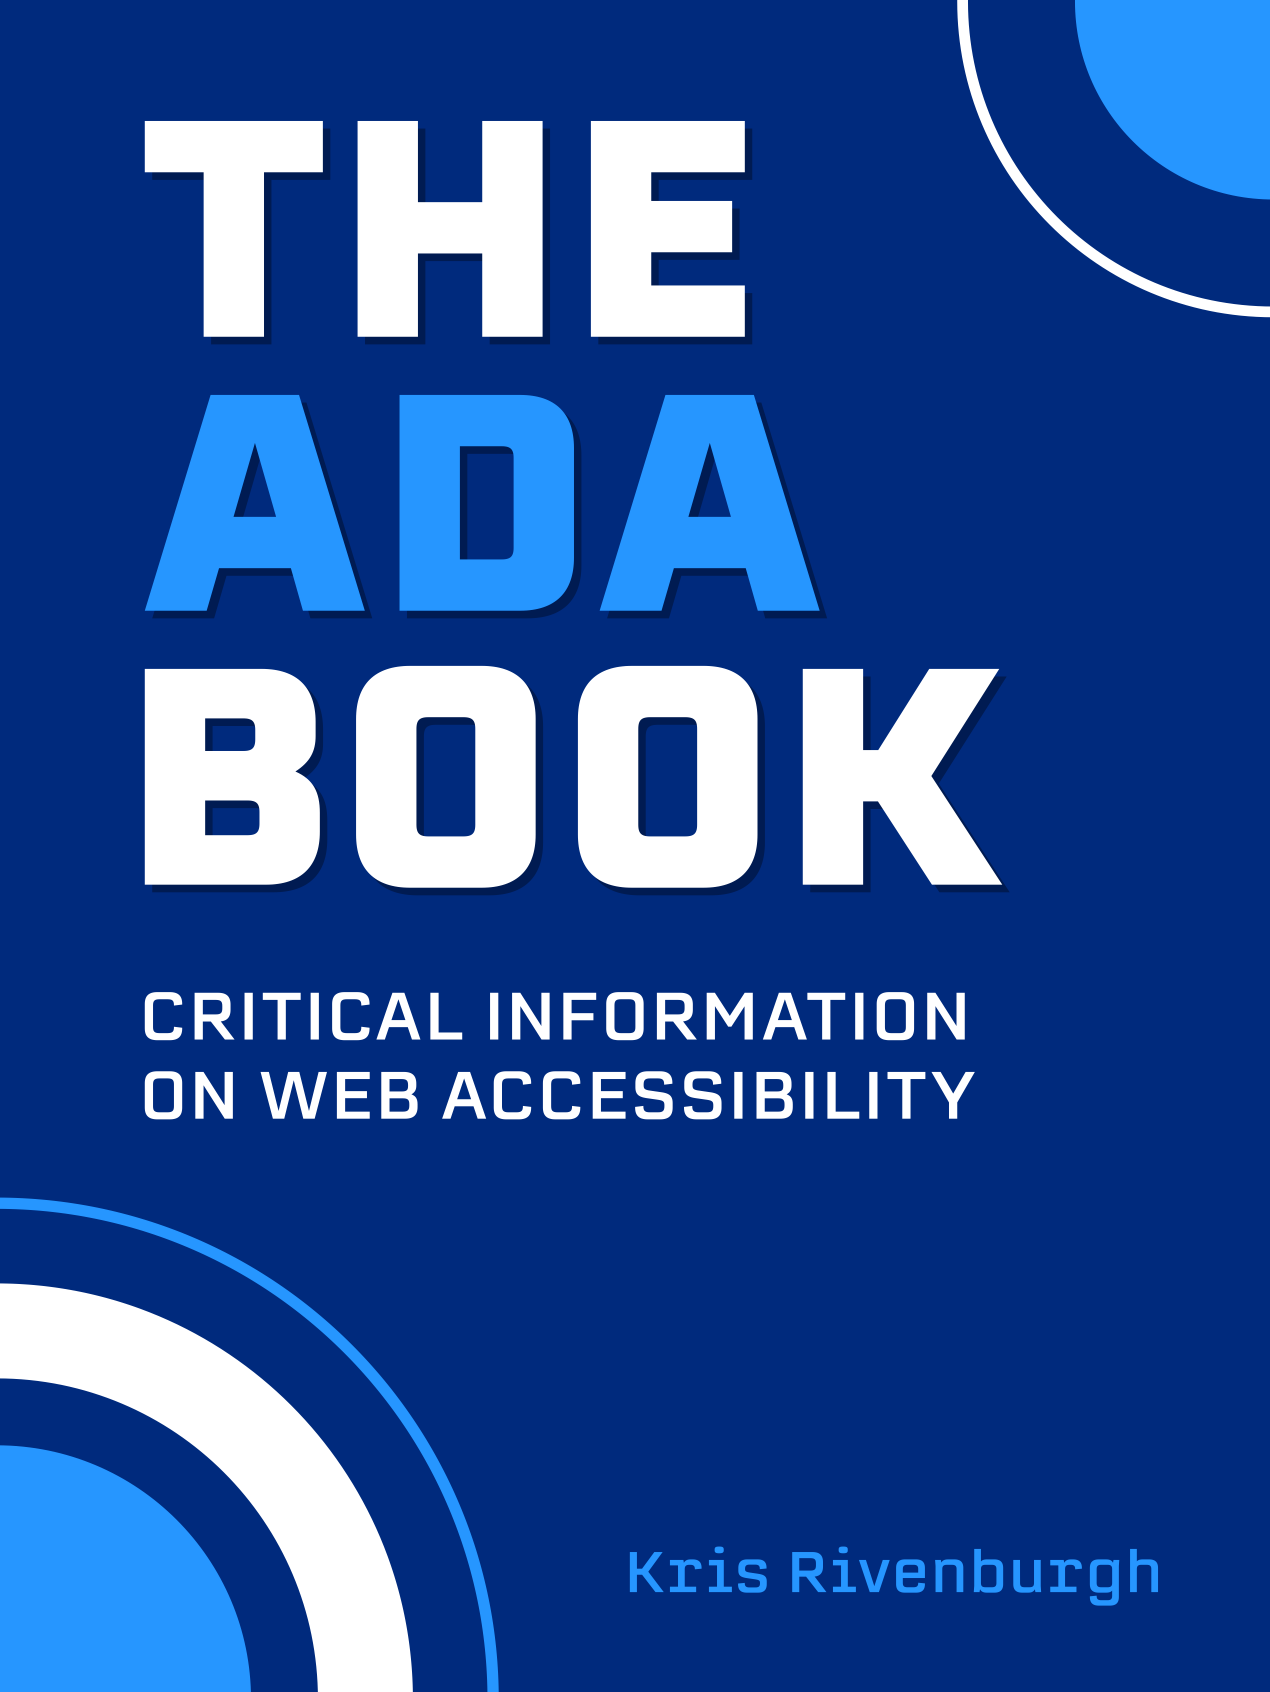 Cover of The ADA Book. Subtext is ?Critical Information on Web Accessibility? and author is Kris Rivenburgh. Dark blue cover.